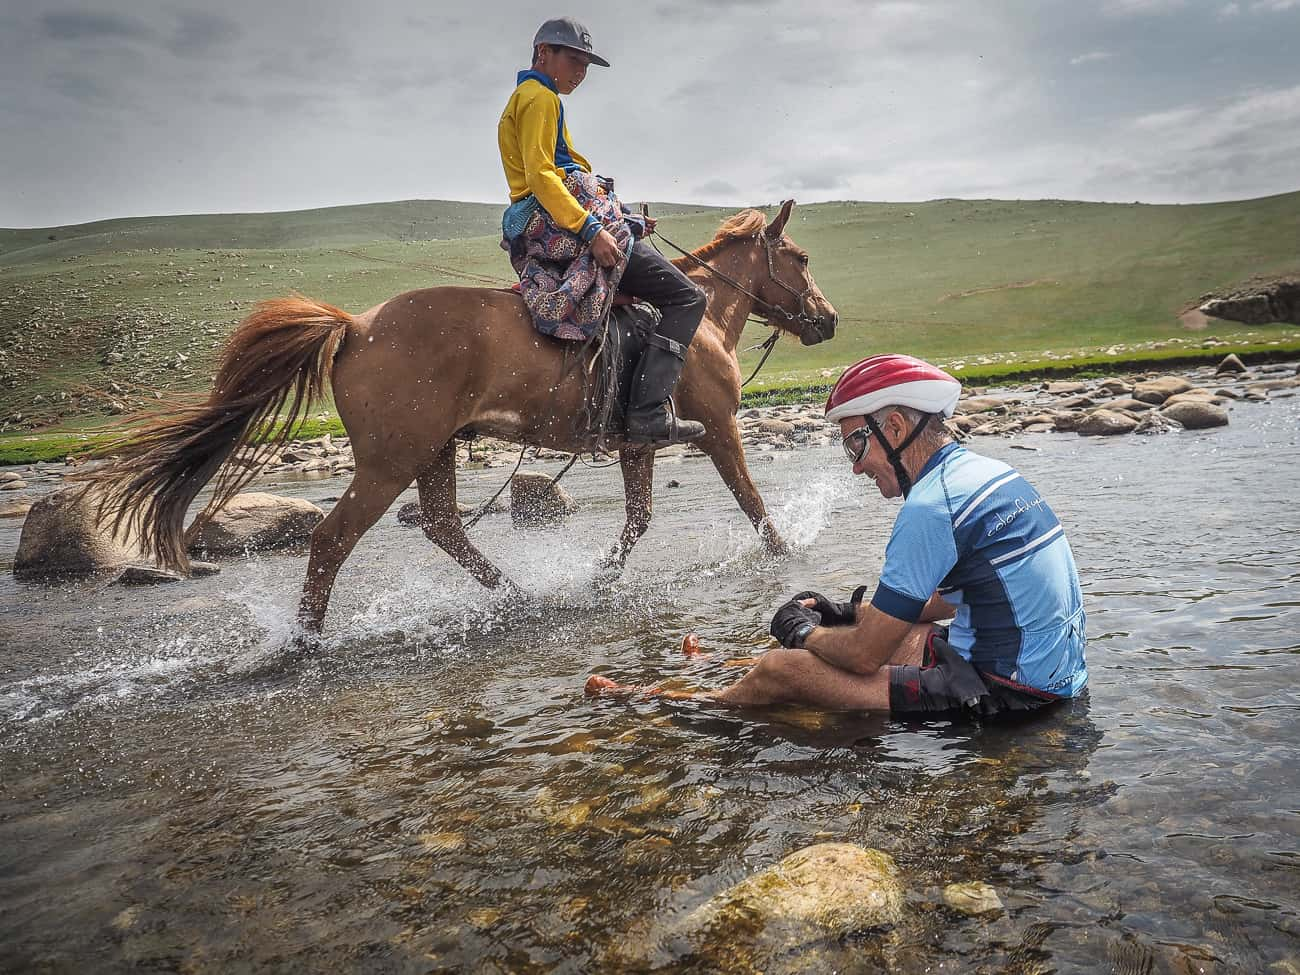 a cyclist in Mongolia sitting in a river as a horse rider passes by